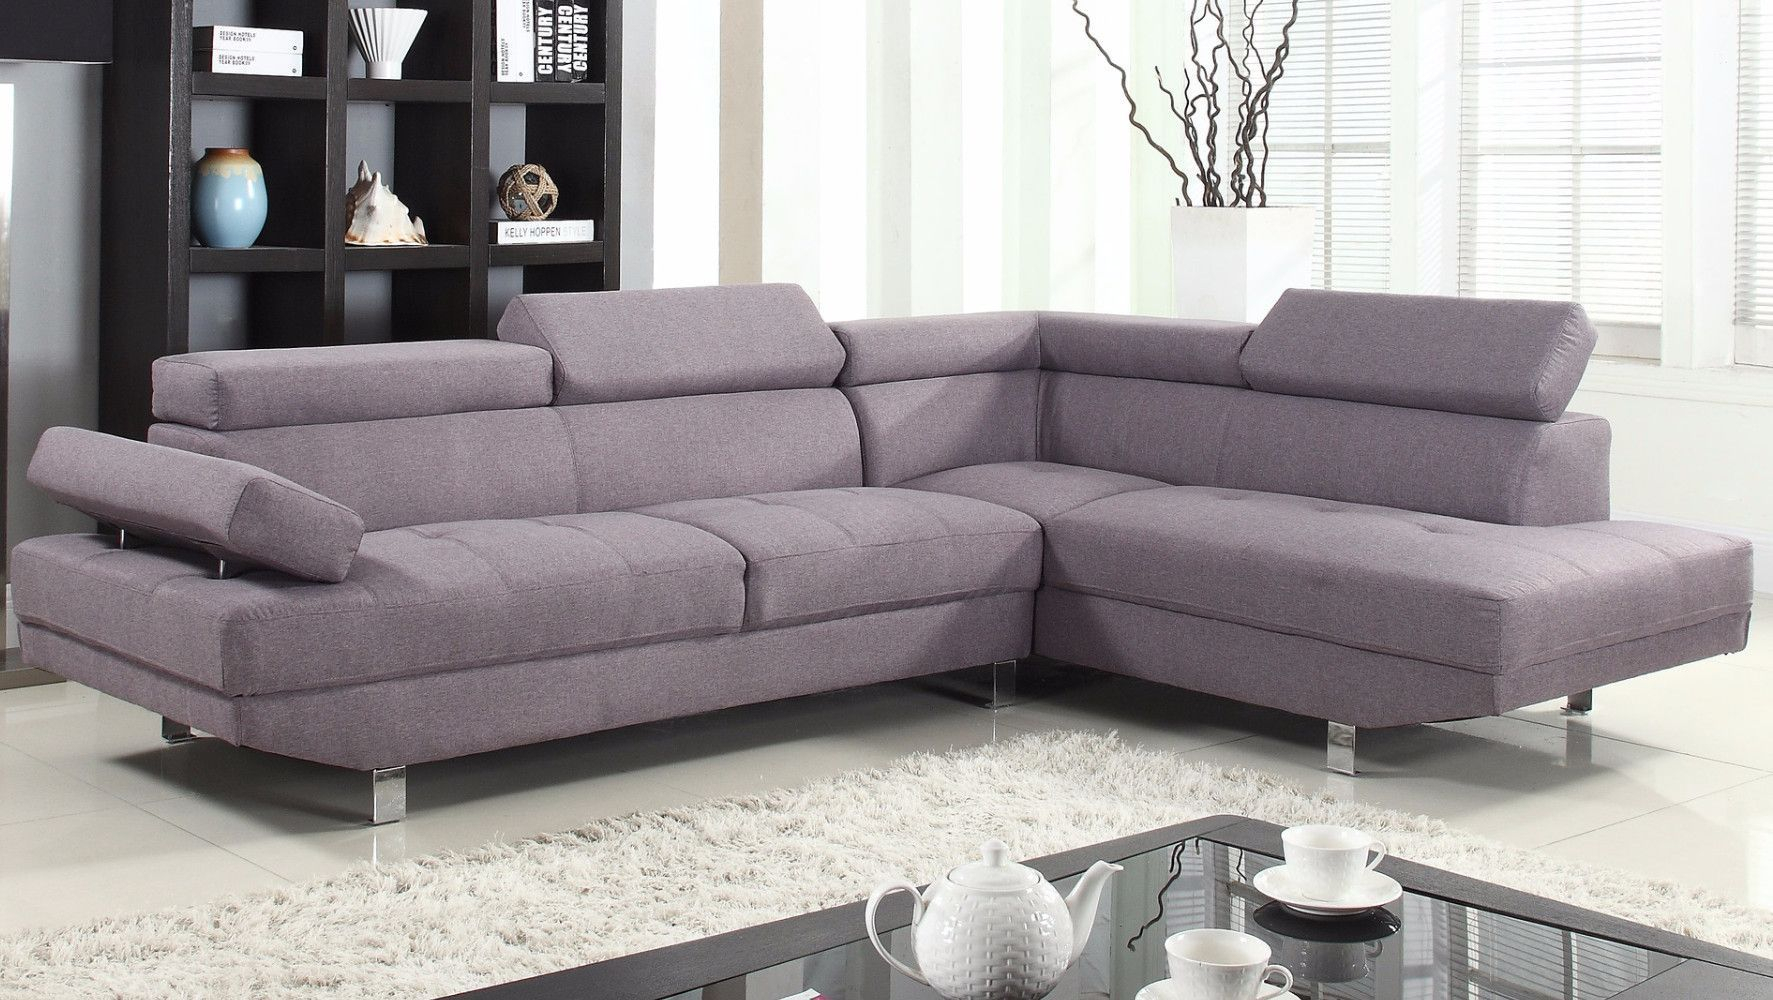 2 Piece Modern Linen Fabric Right Facing Chaise Sectional Throughout Polyfiber Linen Fabric Sectional Sofas Dark Gray (View 6 of 15)